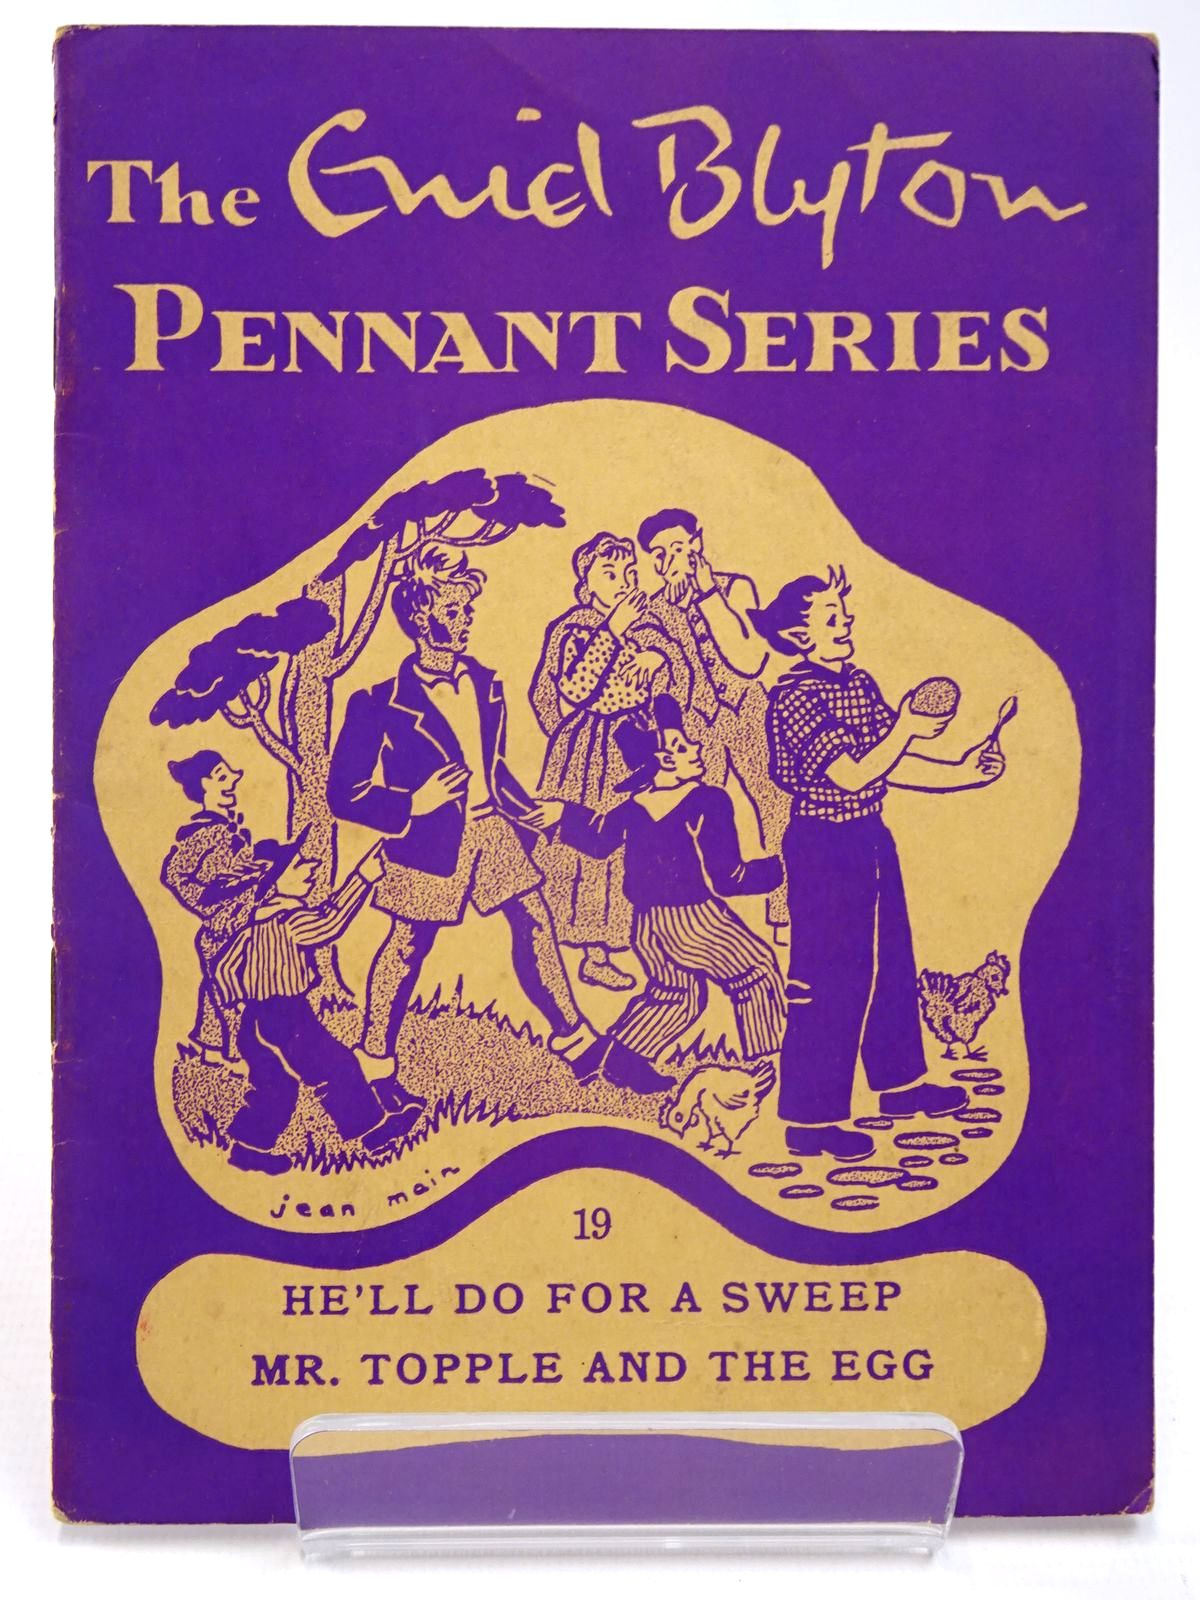 Photo of THE ENID BLYTON PENNANT SERIES No. 19 HE'LL DO FOR A SWEEP / MR. TOPPLE AND THE EGG written by Blyton, Enid illustrated by Soper, Eileen Main, Jean published by Macmillan & Co. Ltd. (STOCK CODE: 2130518)  for sale by Stella & Rose's Books